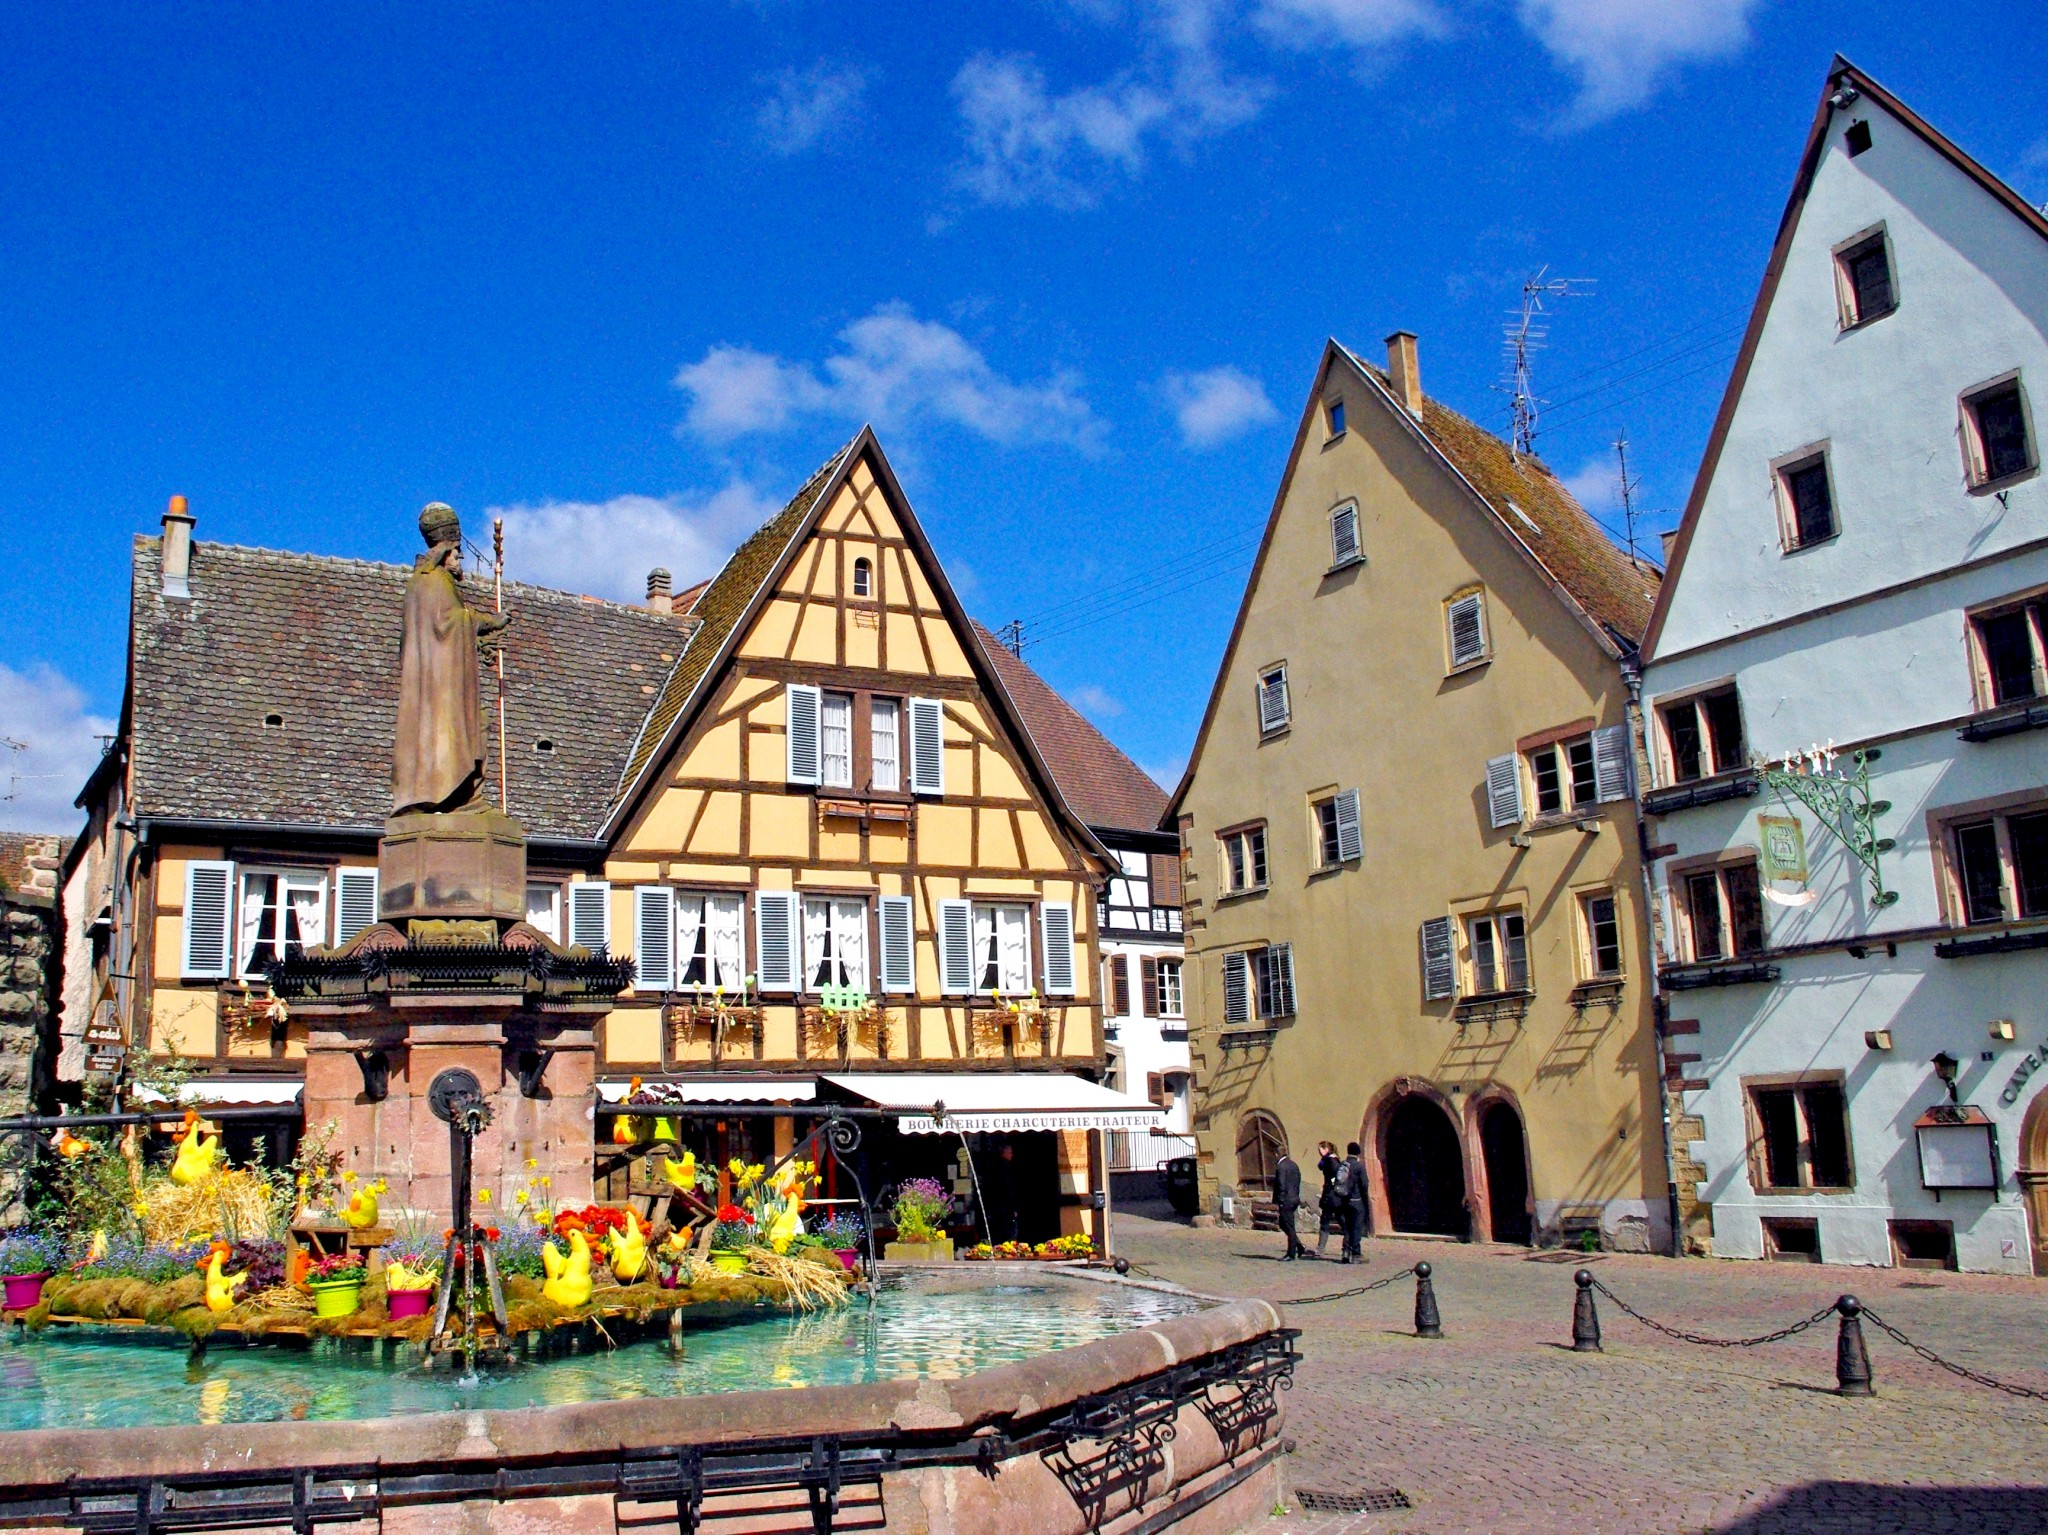 201 Guisheim Alsace French Moments